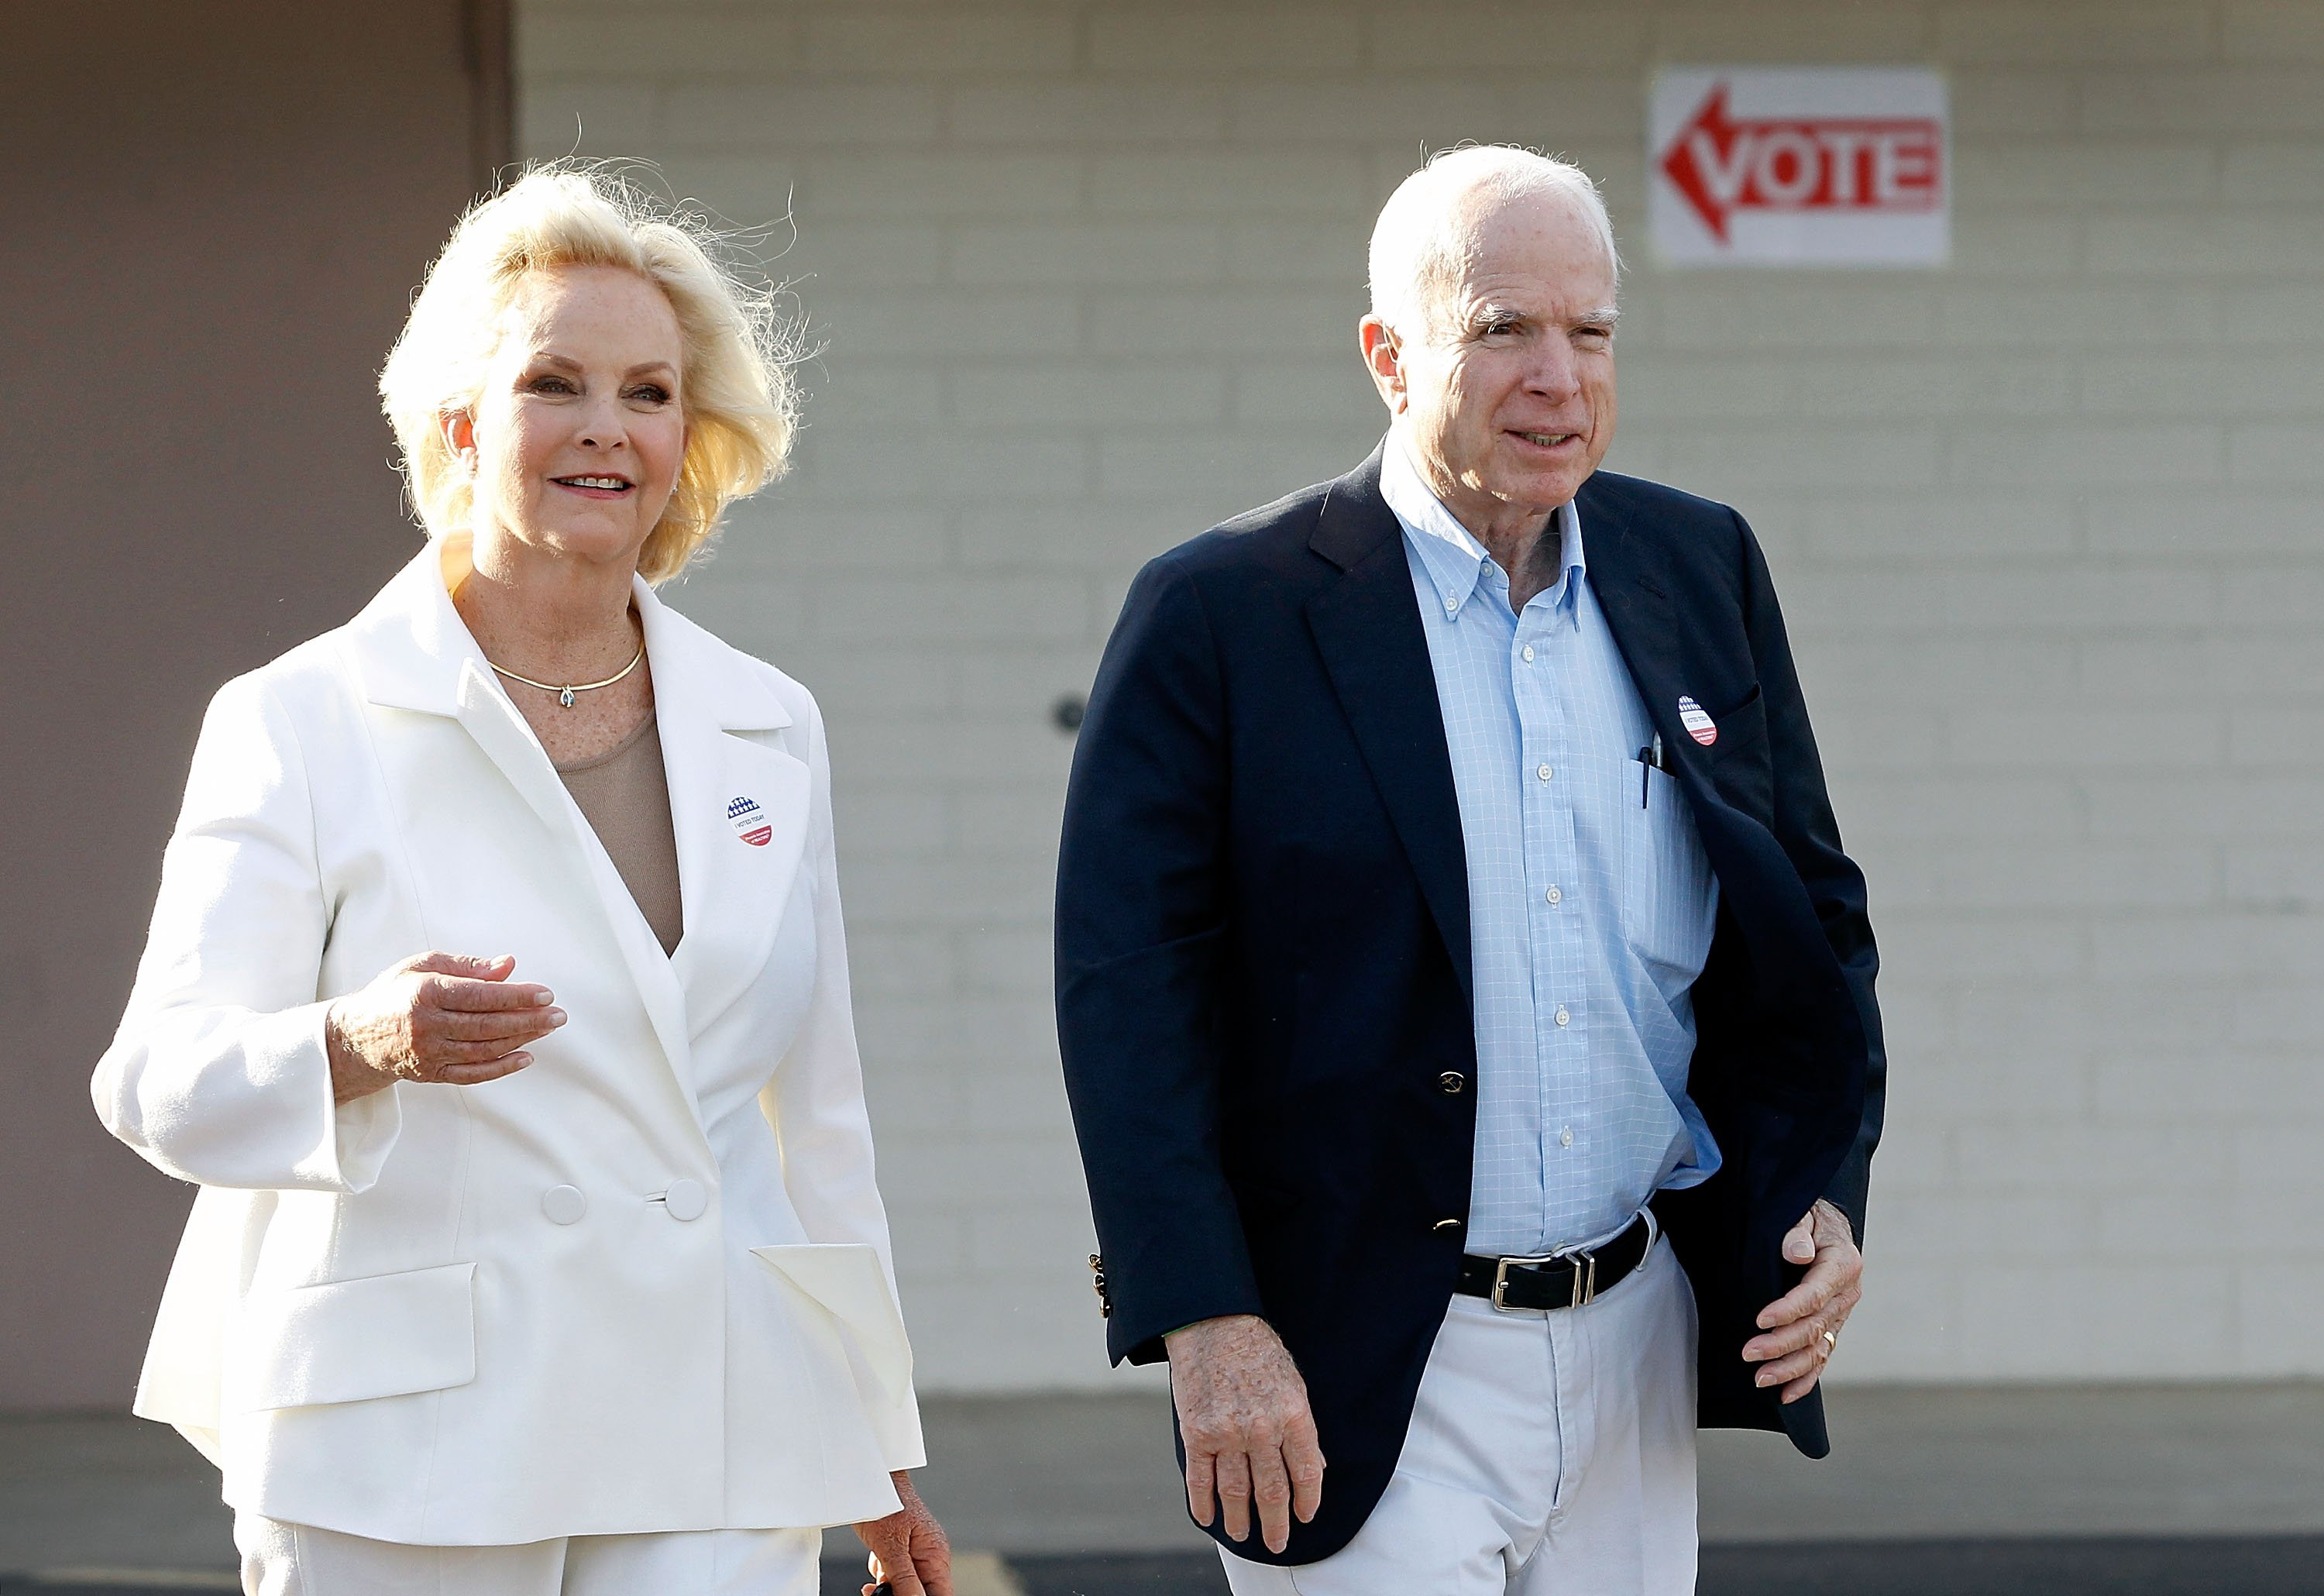 John and Cindy McCain leaving the Mountain View Christian Church polling place after casting their vote on November 8, 2016 in Phoenix, Arizona | Photo: Getty Images